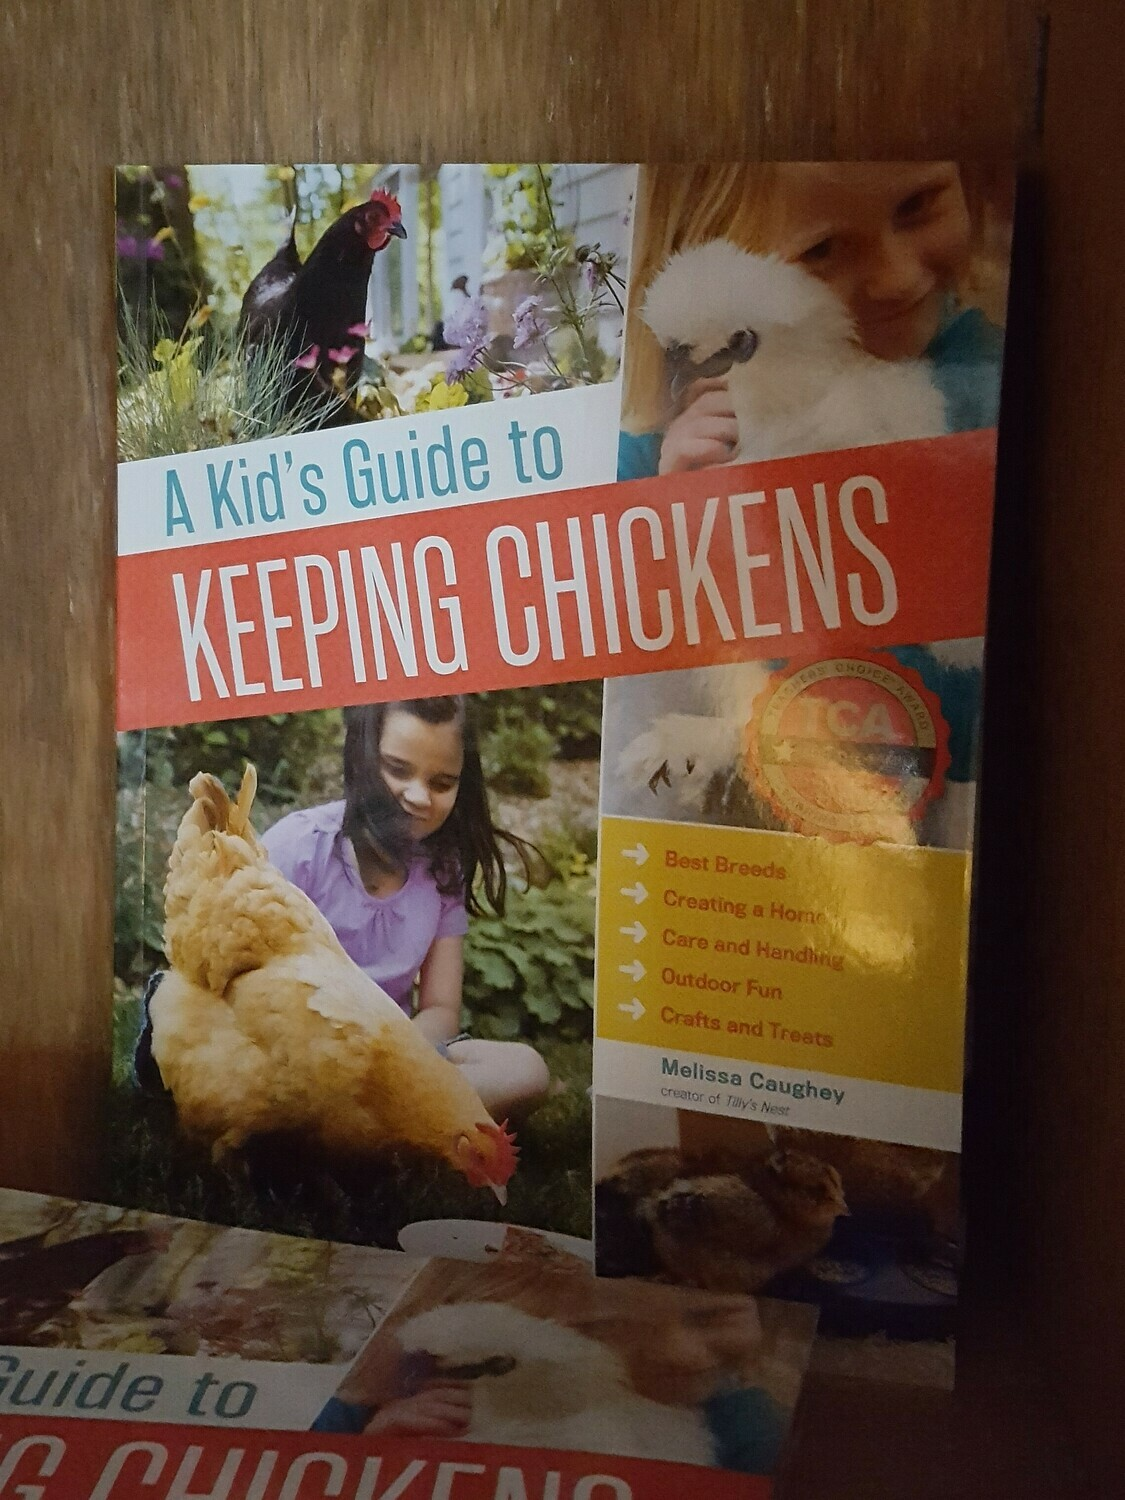 A Kid's Guide to Keeping Chickens, by Melissa Caughey